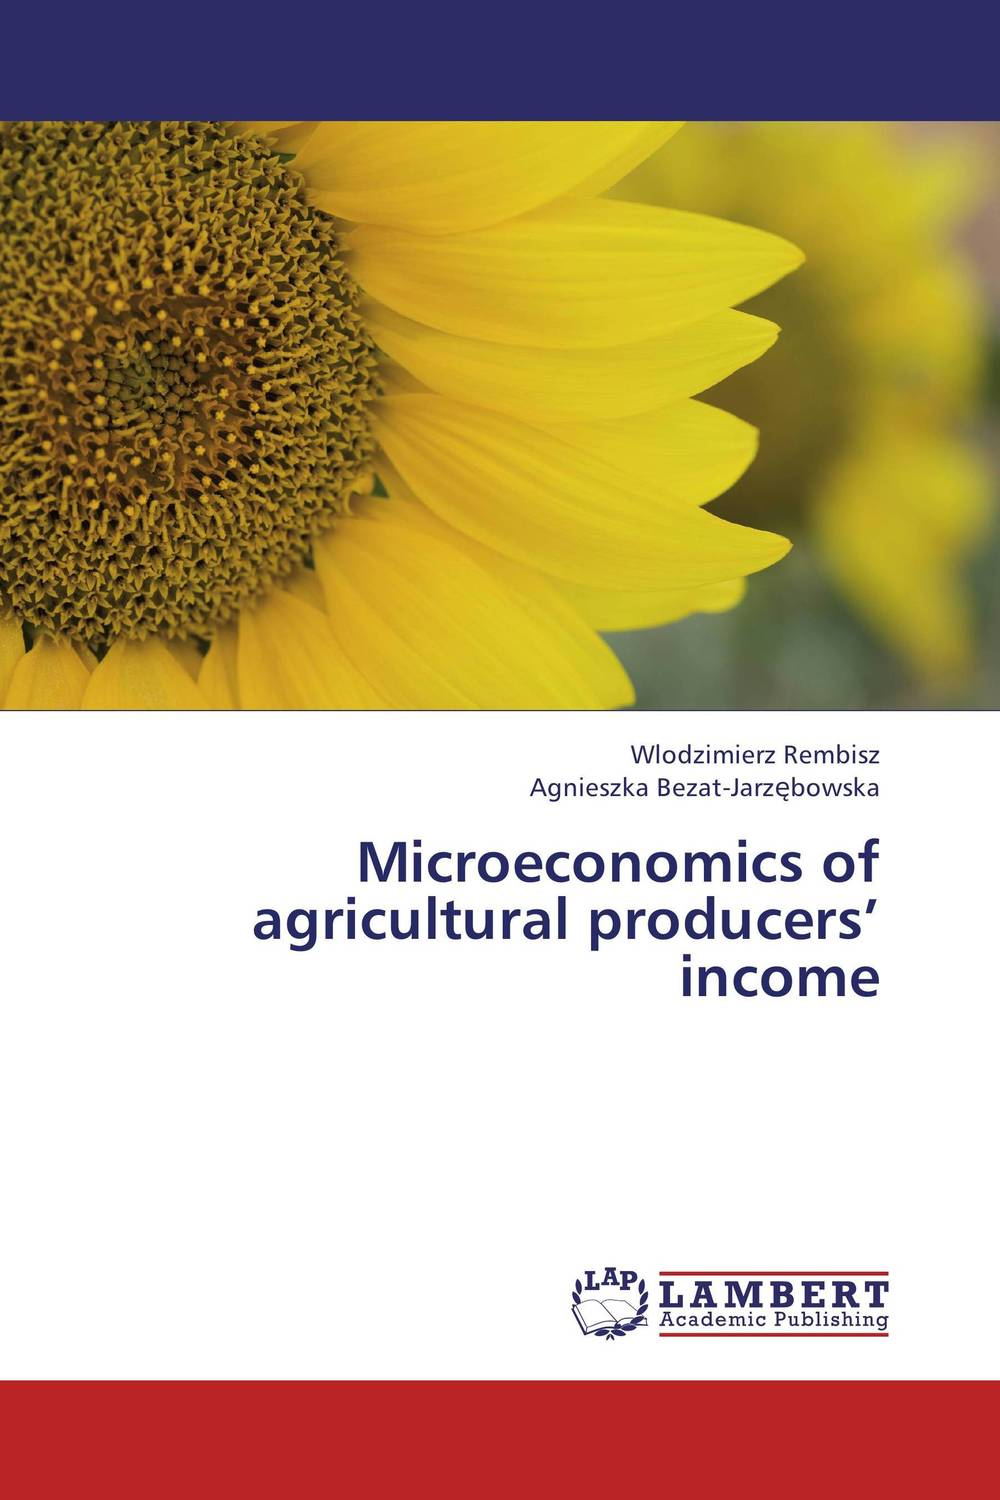 Microeconomics of agricultural producers' income a study of the religio political thought of abdurrahman wahid